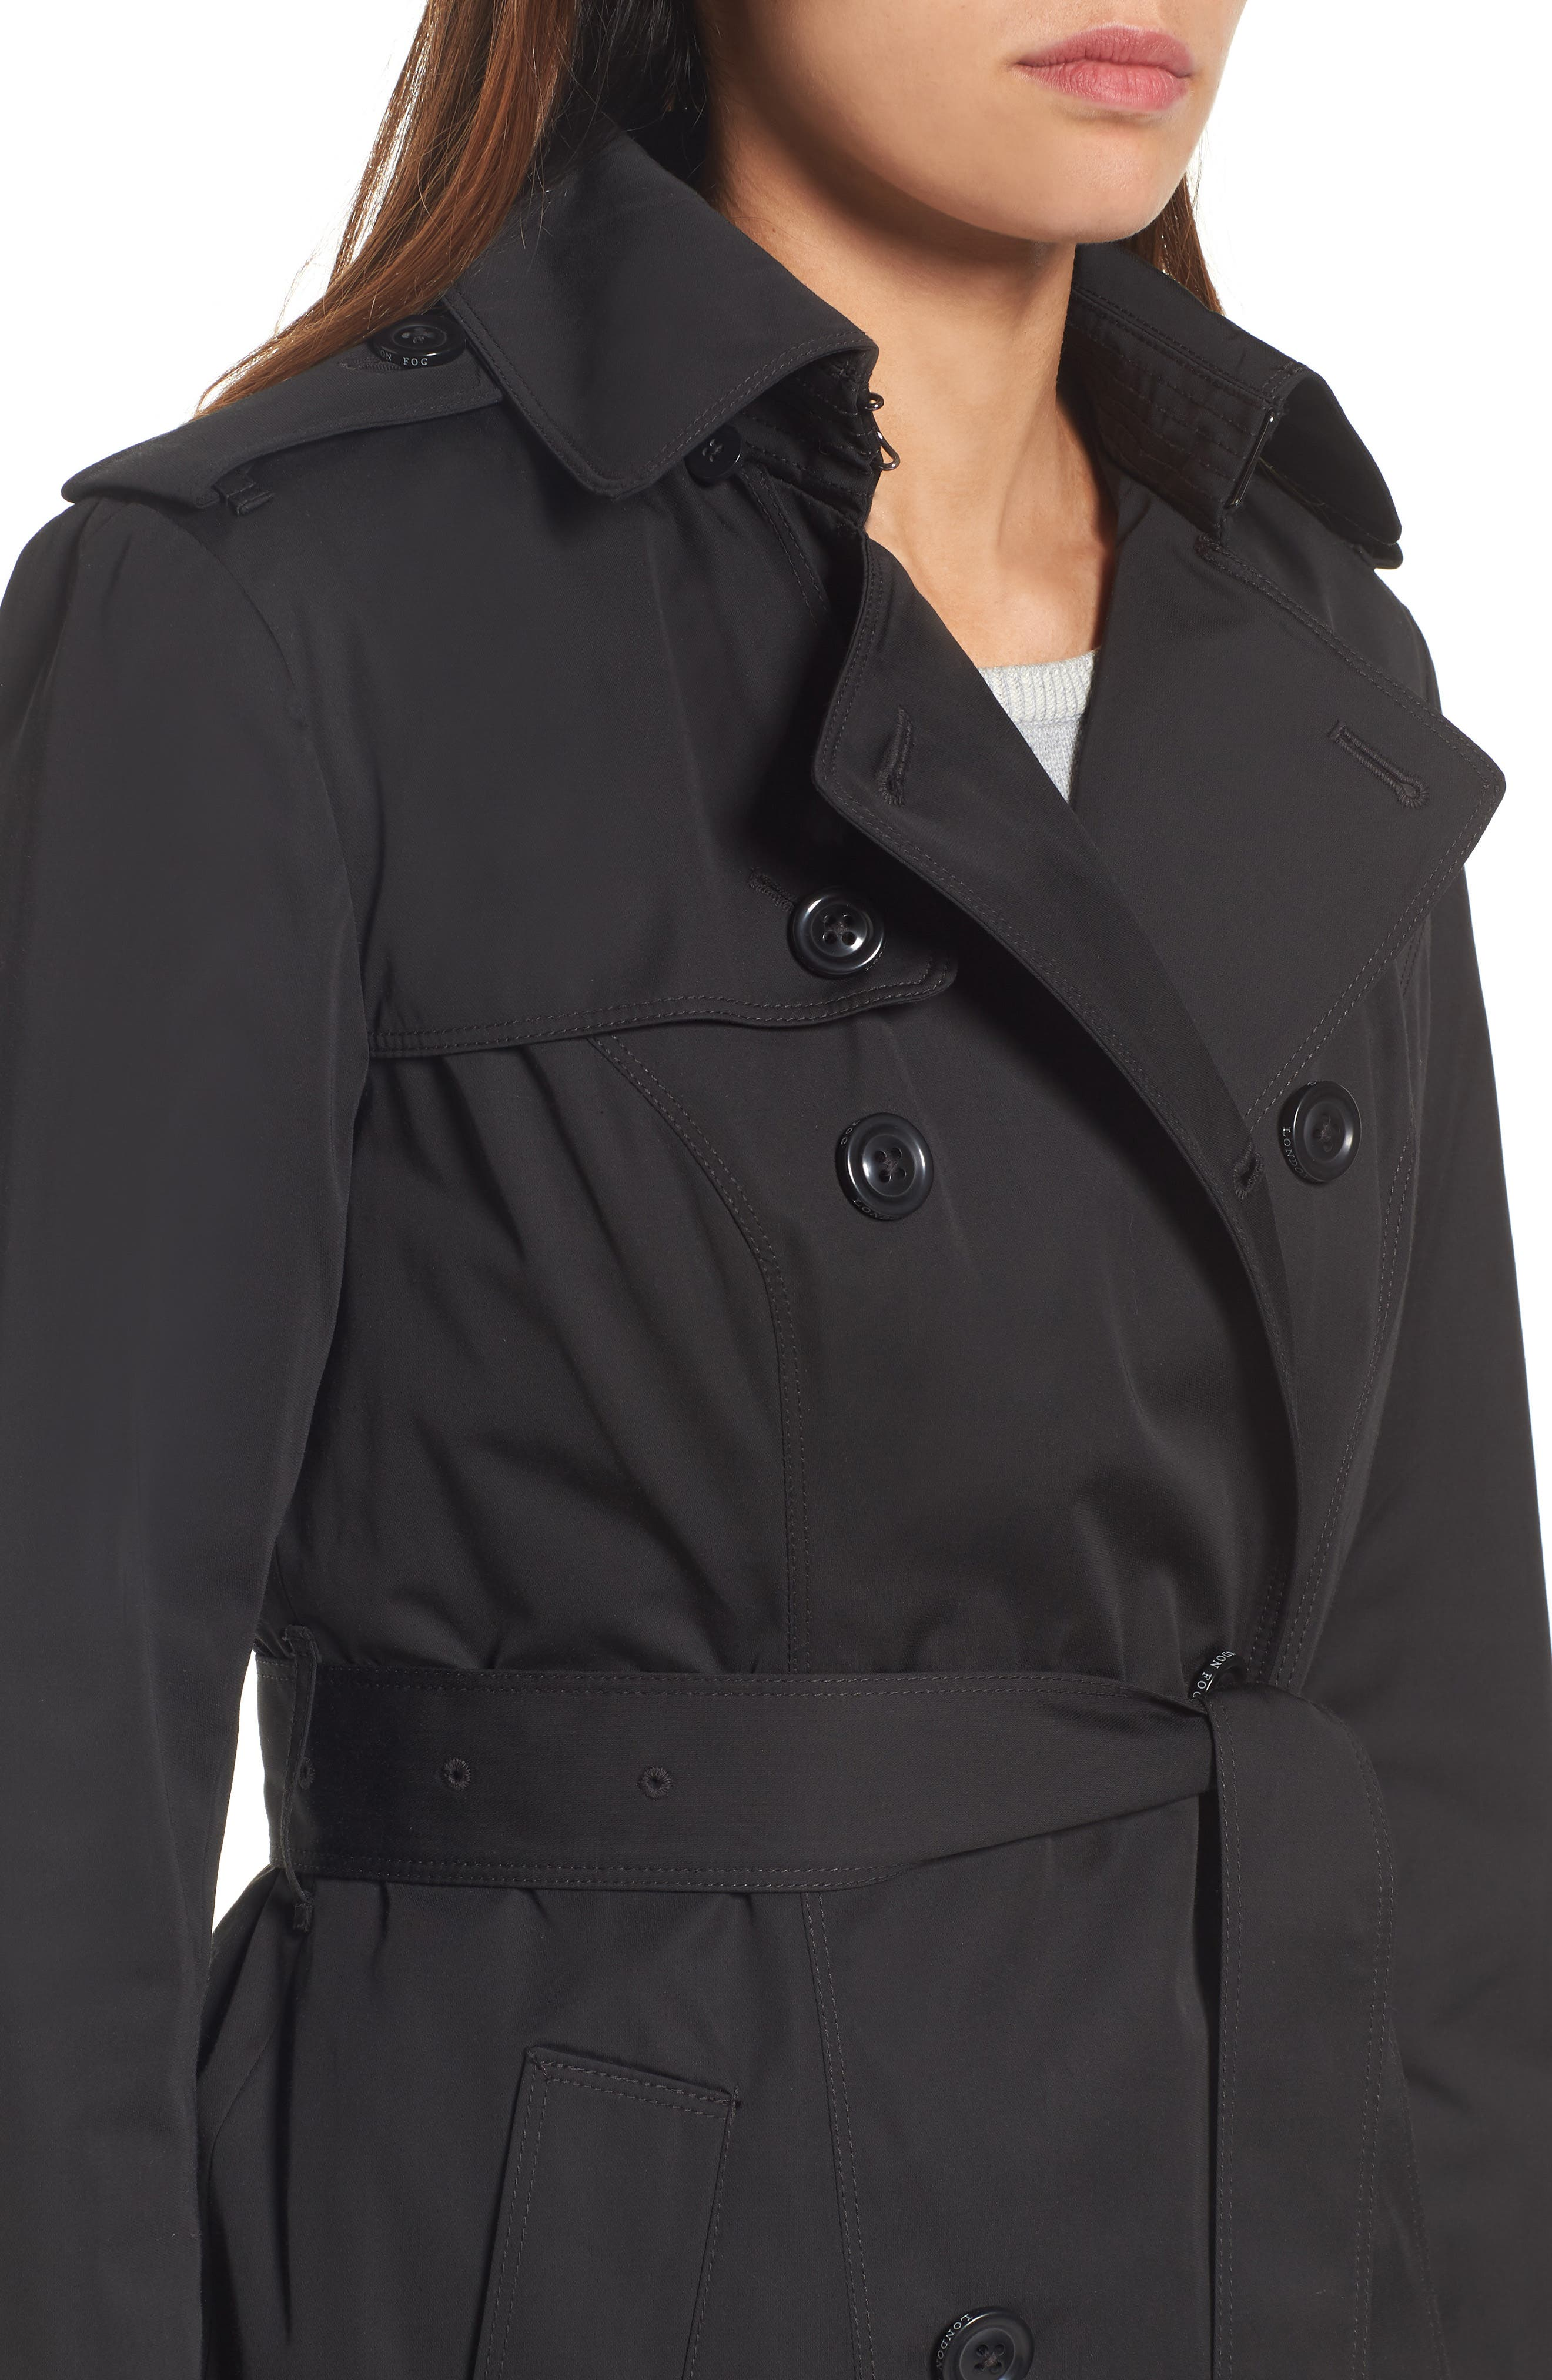 Heritage Trench Coat with Detachable Liner,                             Alternate thumbnail 3, color,                             Black